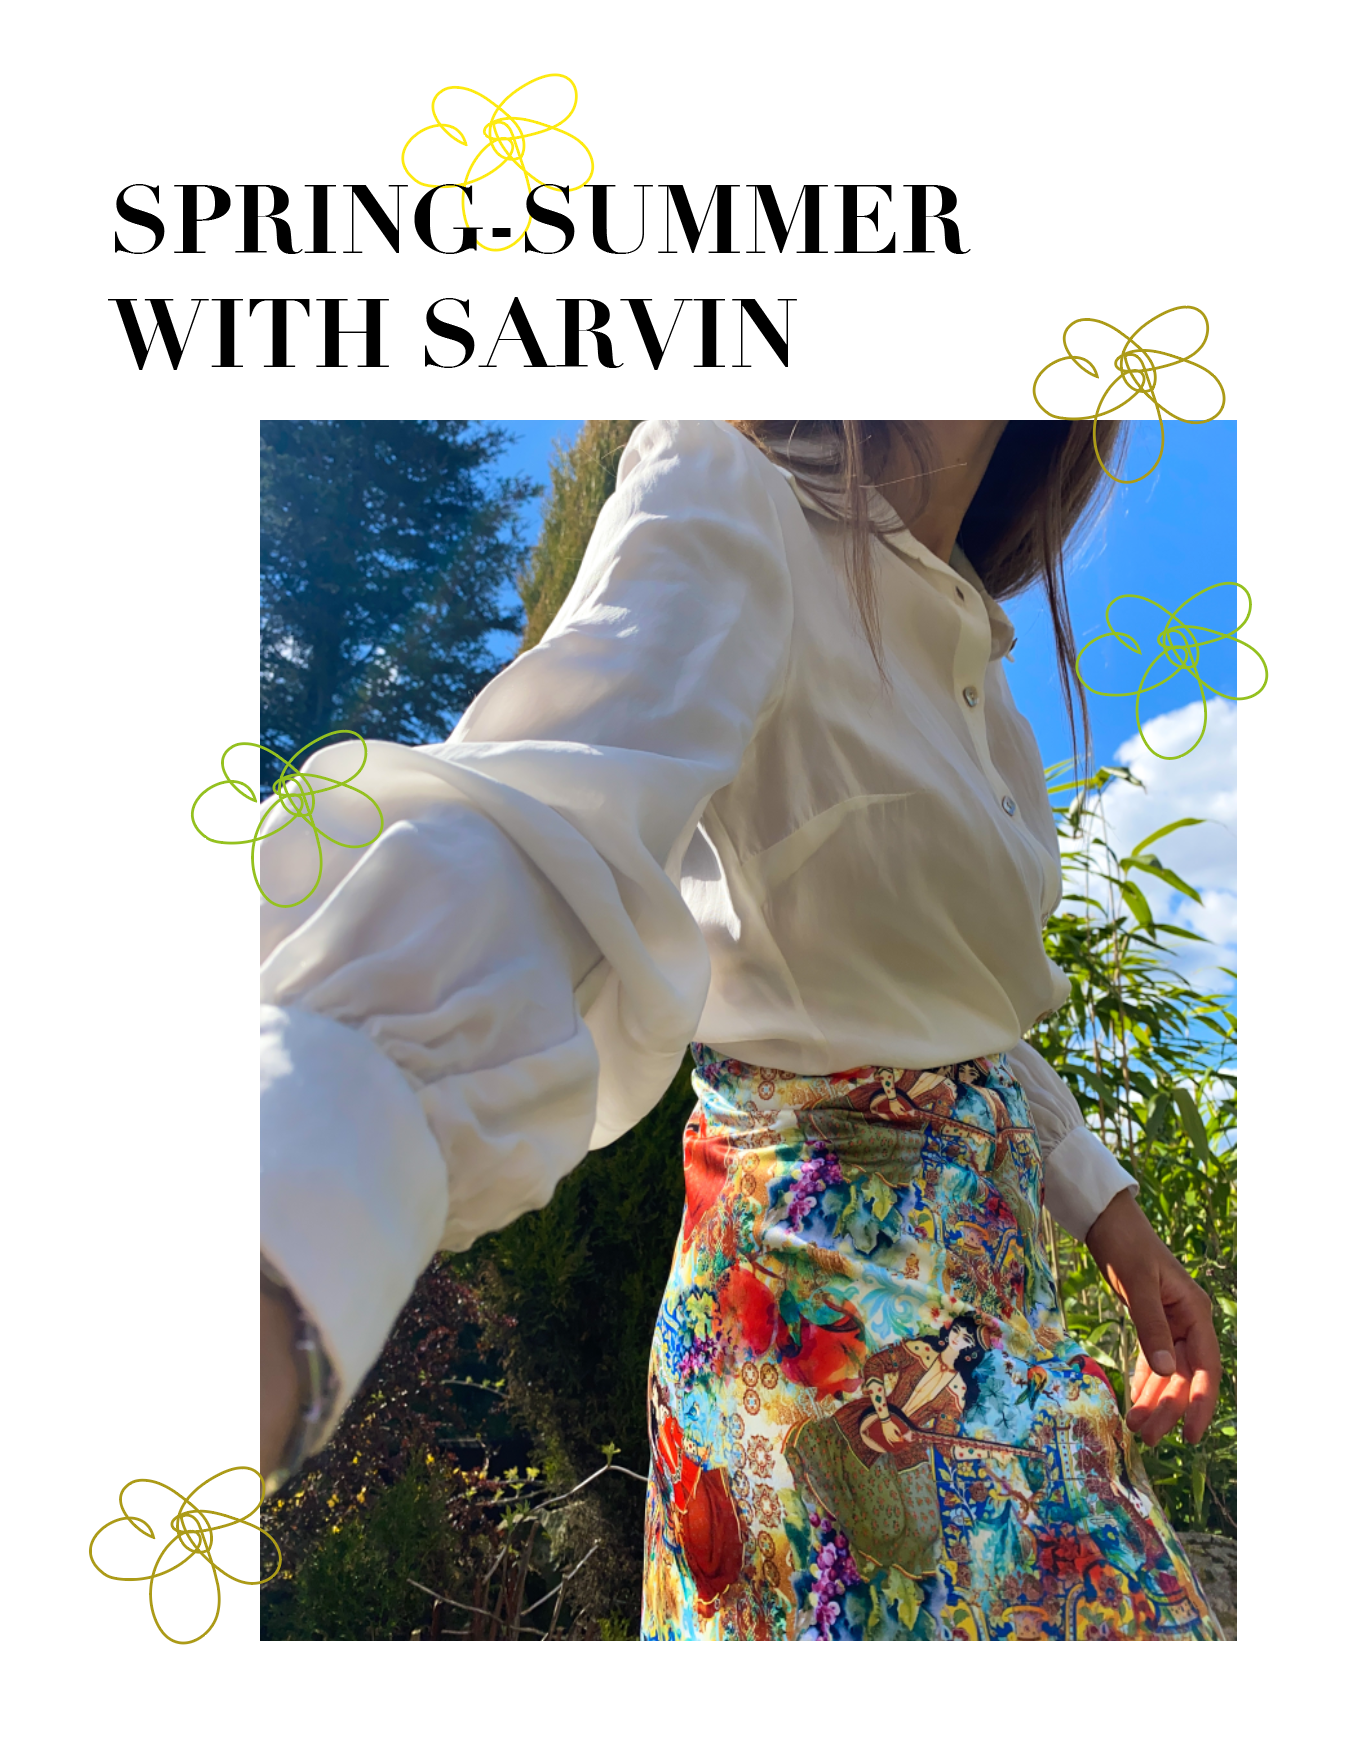 SARVIN STYLES FOR THE WHOLE SPRING-SUMMER SEASON